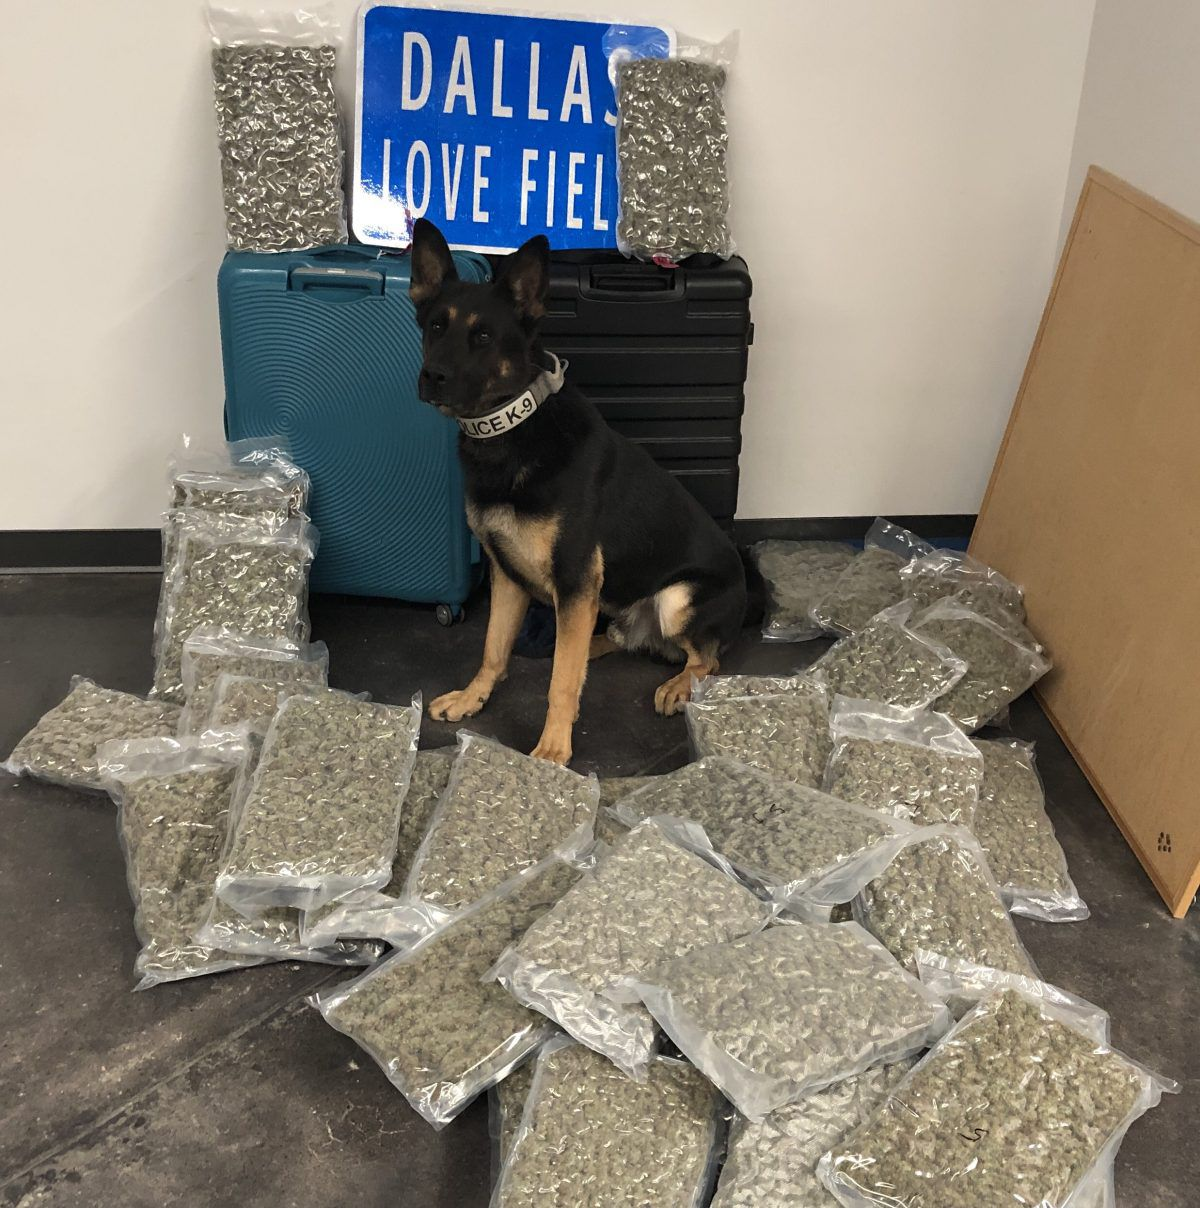 Canine Ballentine alerted police to suspicious luggage that contained 42 pounds of marijuana at Dallas Love Field on Saturday.